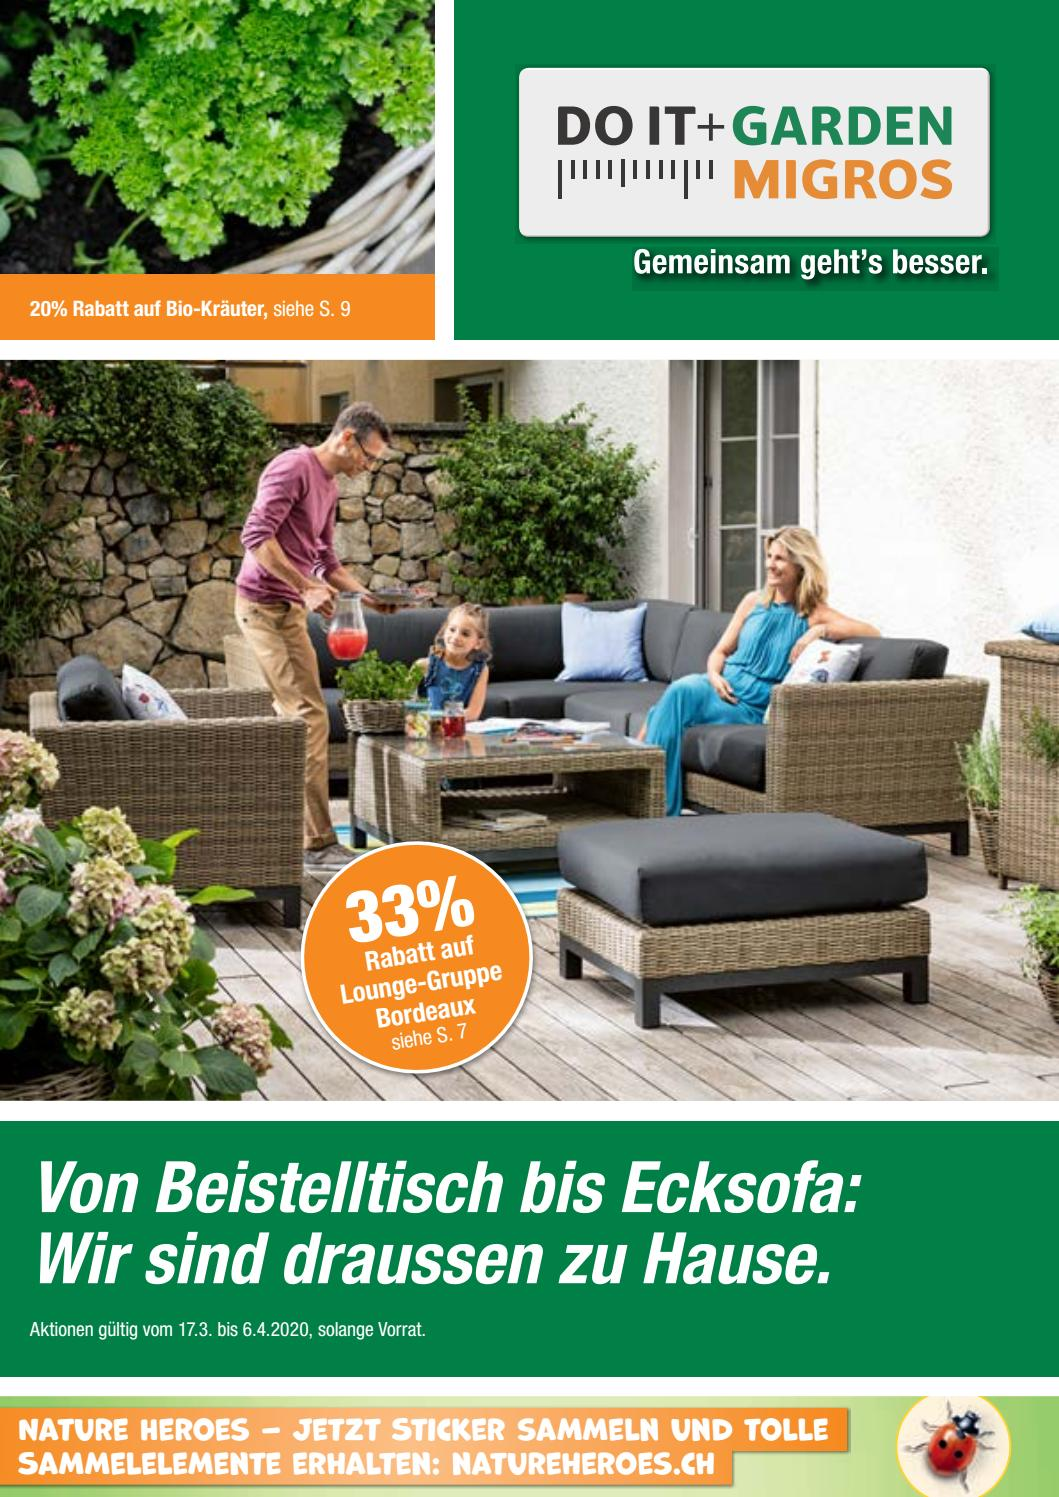 Full Size of Garten Ecksofa Set Memphis Do It Garden Aktionsflyer Kw12 De By Migros Wohnzimmer Garten Ecksofa Set Memphis